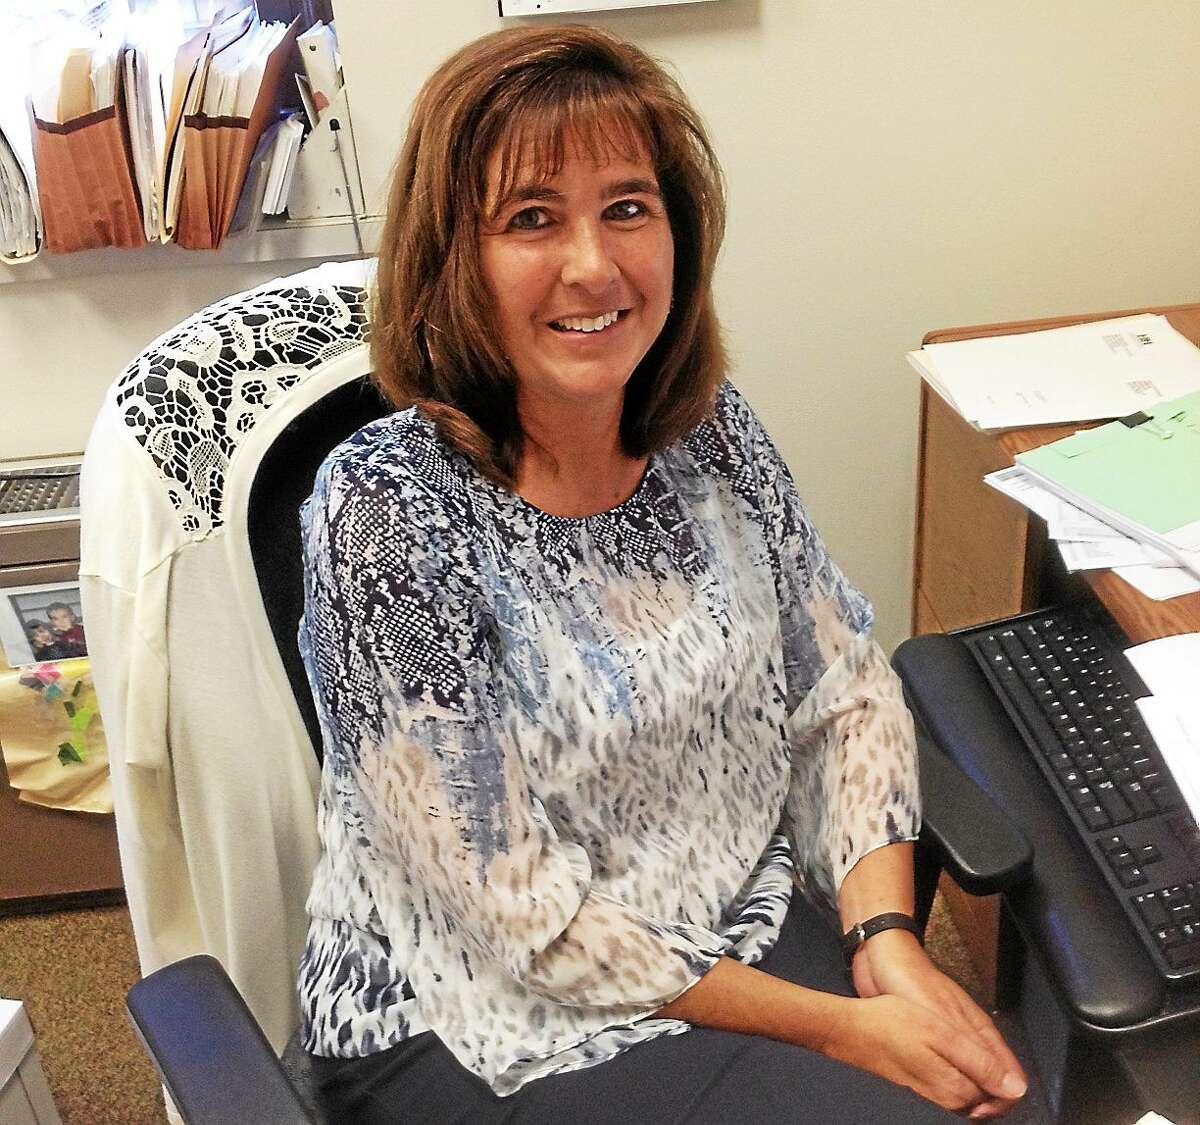 Janet Murphy, town accountant in Cromwell, is leaving town to take a job in Clinton as the finance director.